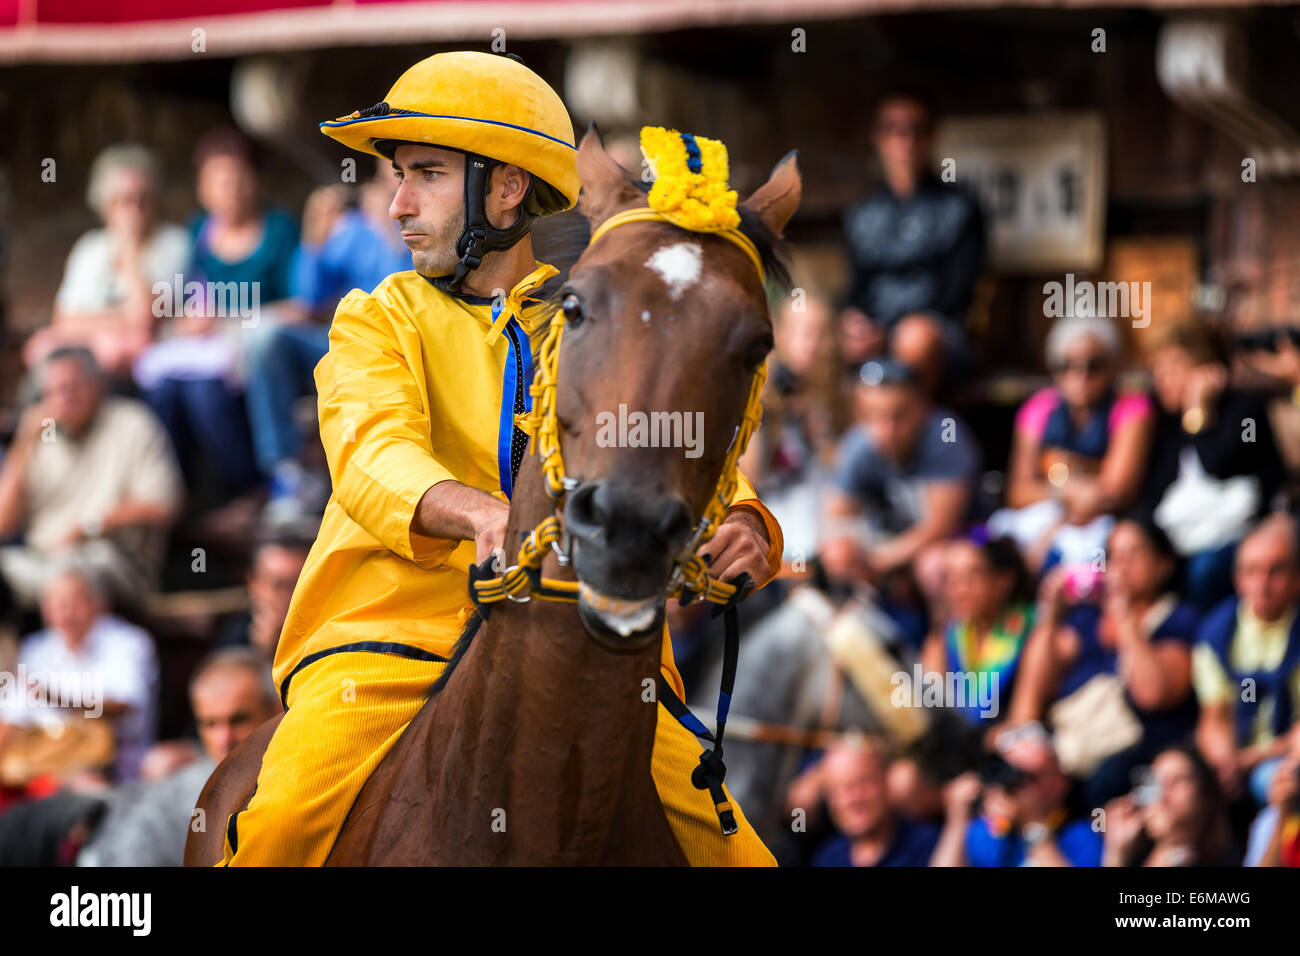 A jockey in Palio di Siena horse race on Piazza del Campo, Siena, Tuscany, Italy - Stock Image